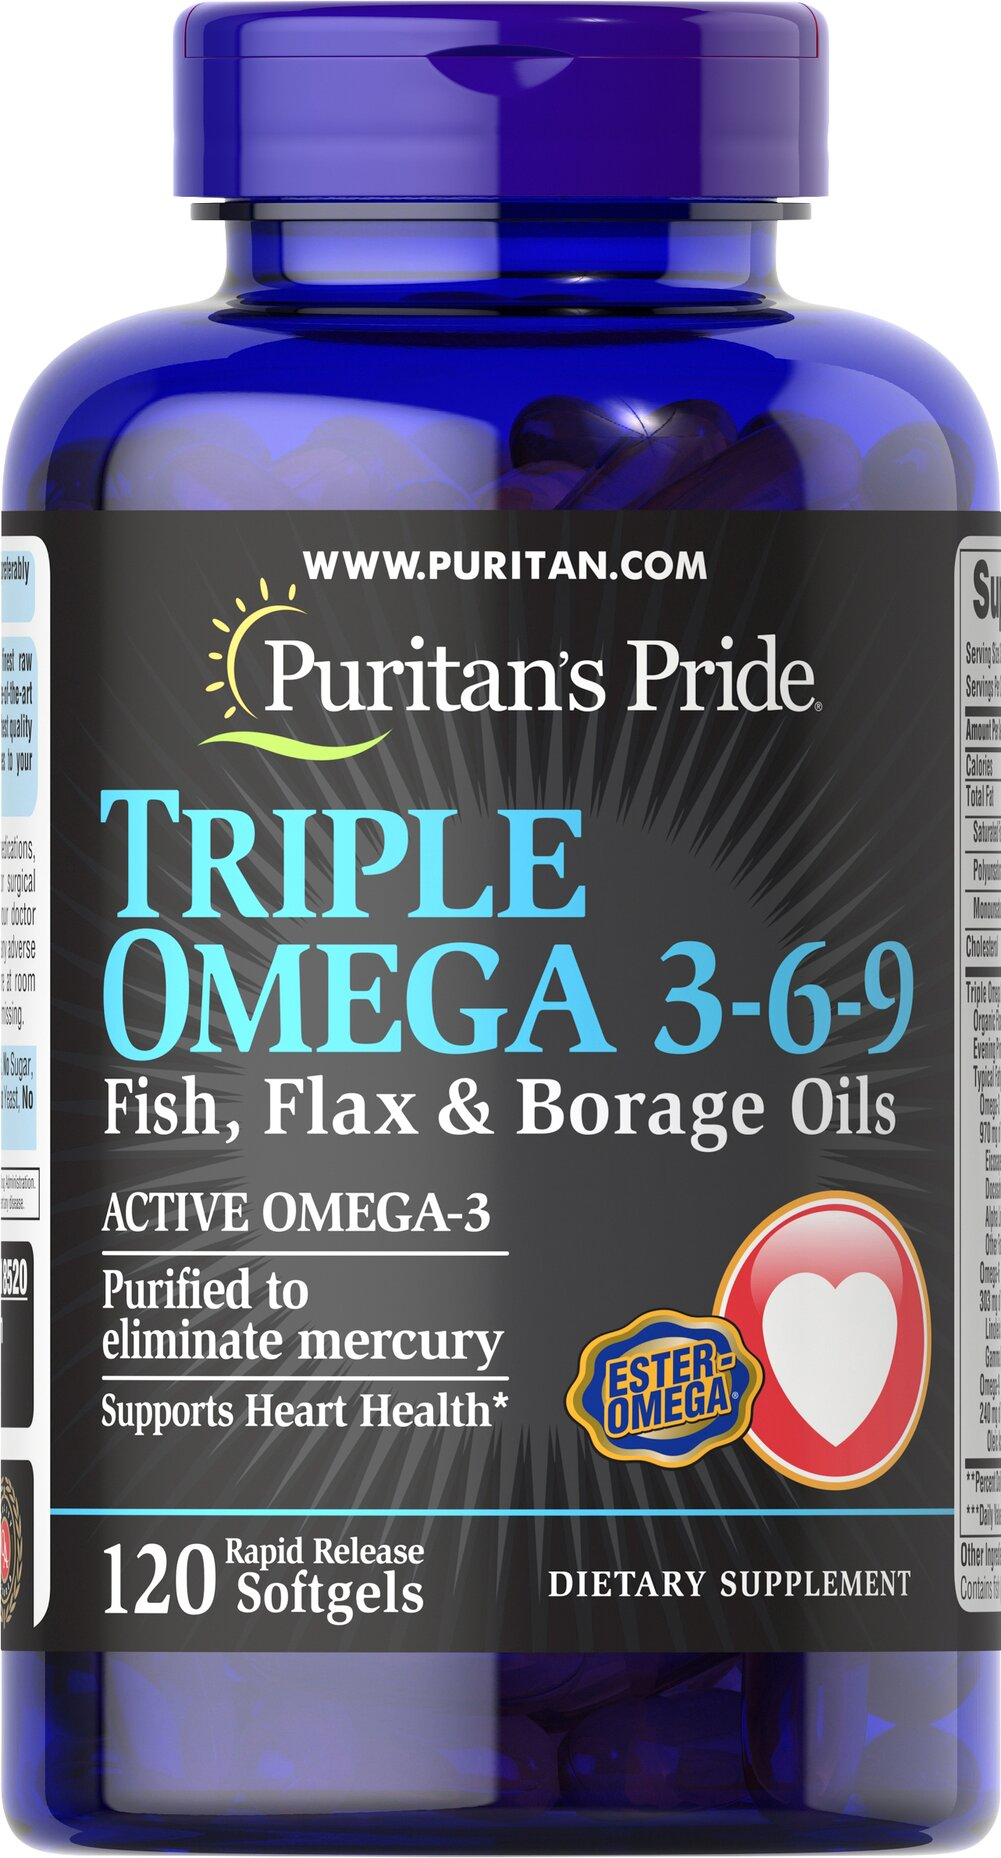 Triple Omega 3-6-9 Fish, Flax & Borage Oils  120 Softgels  $17.19